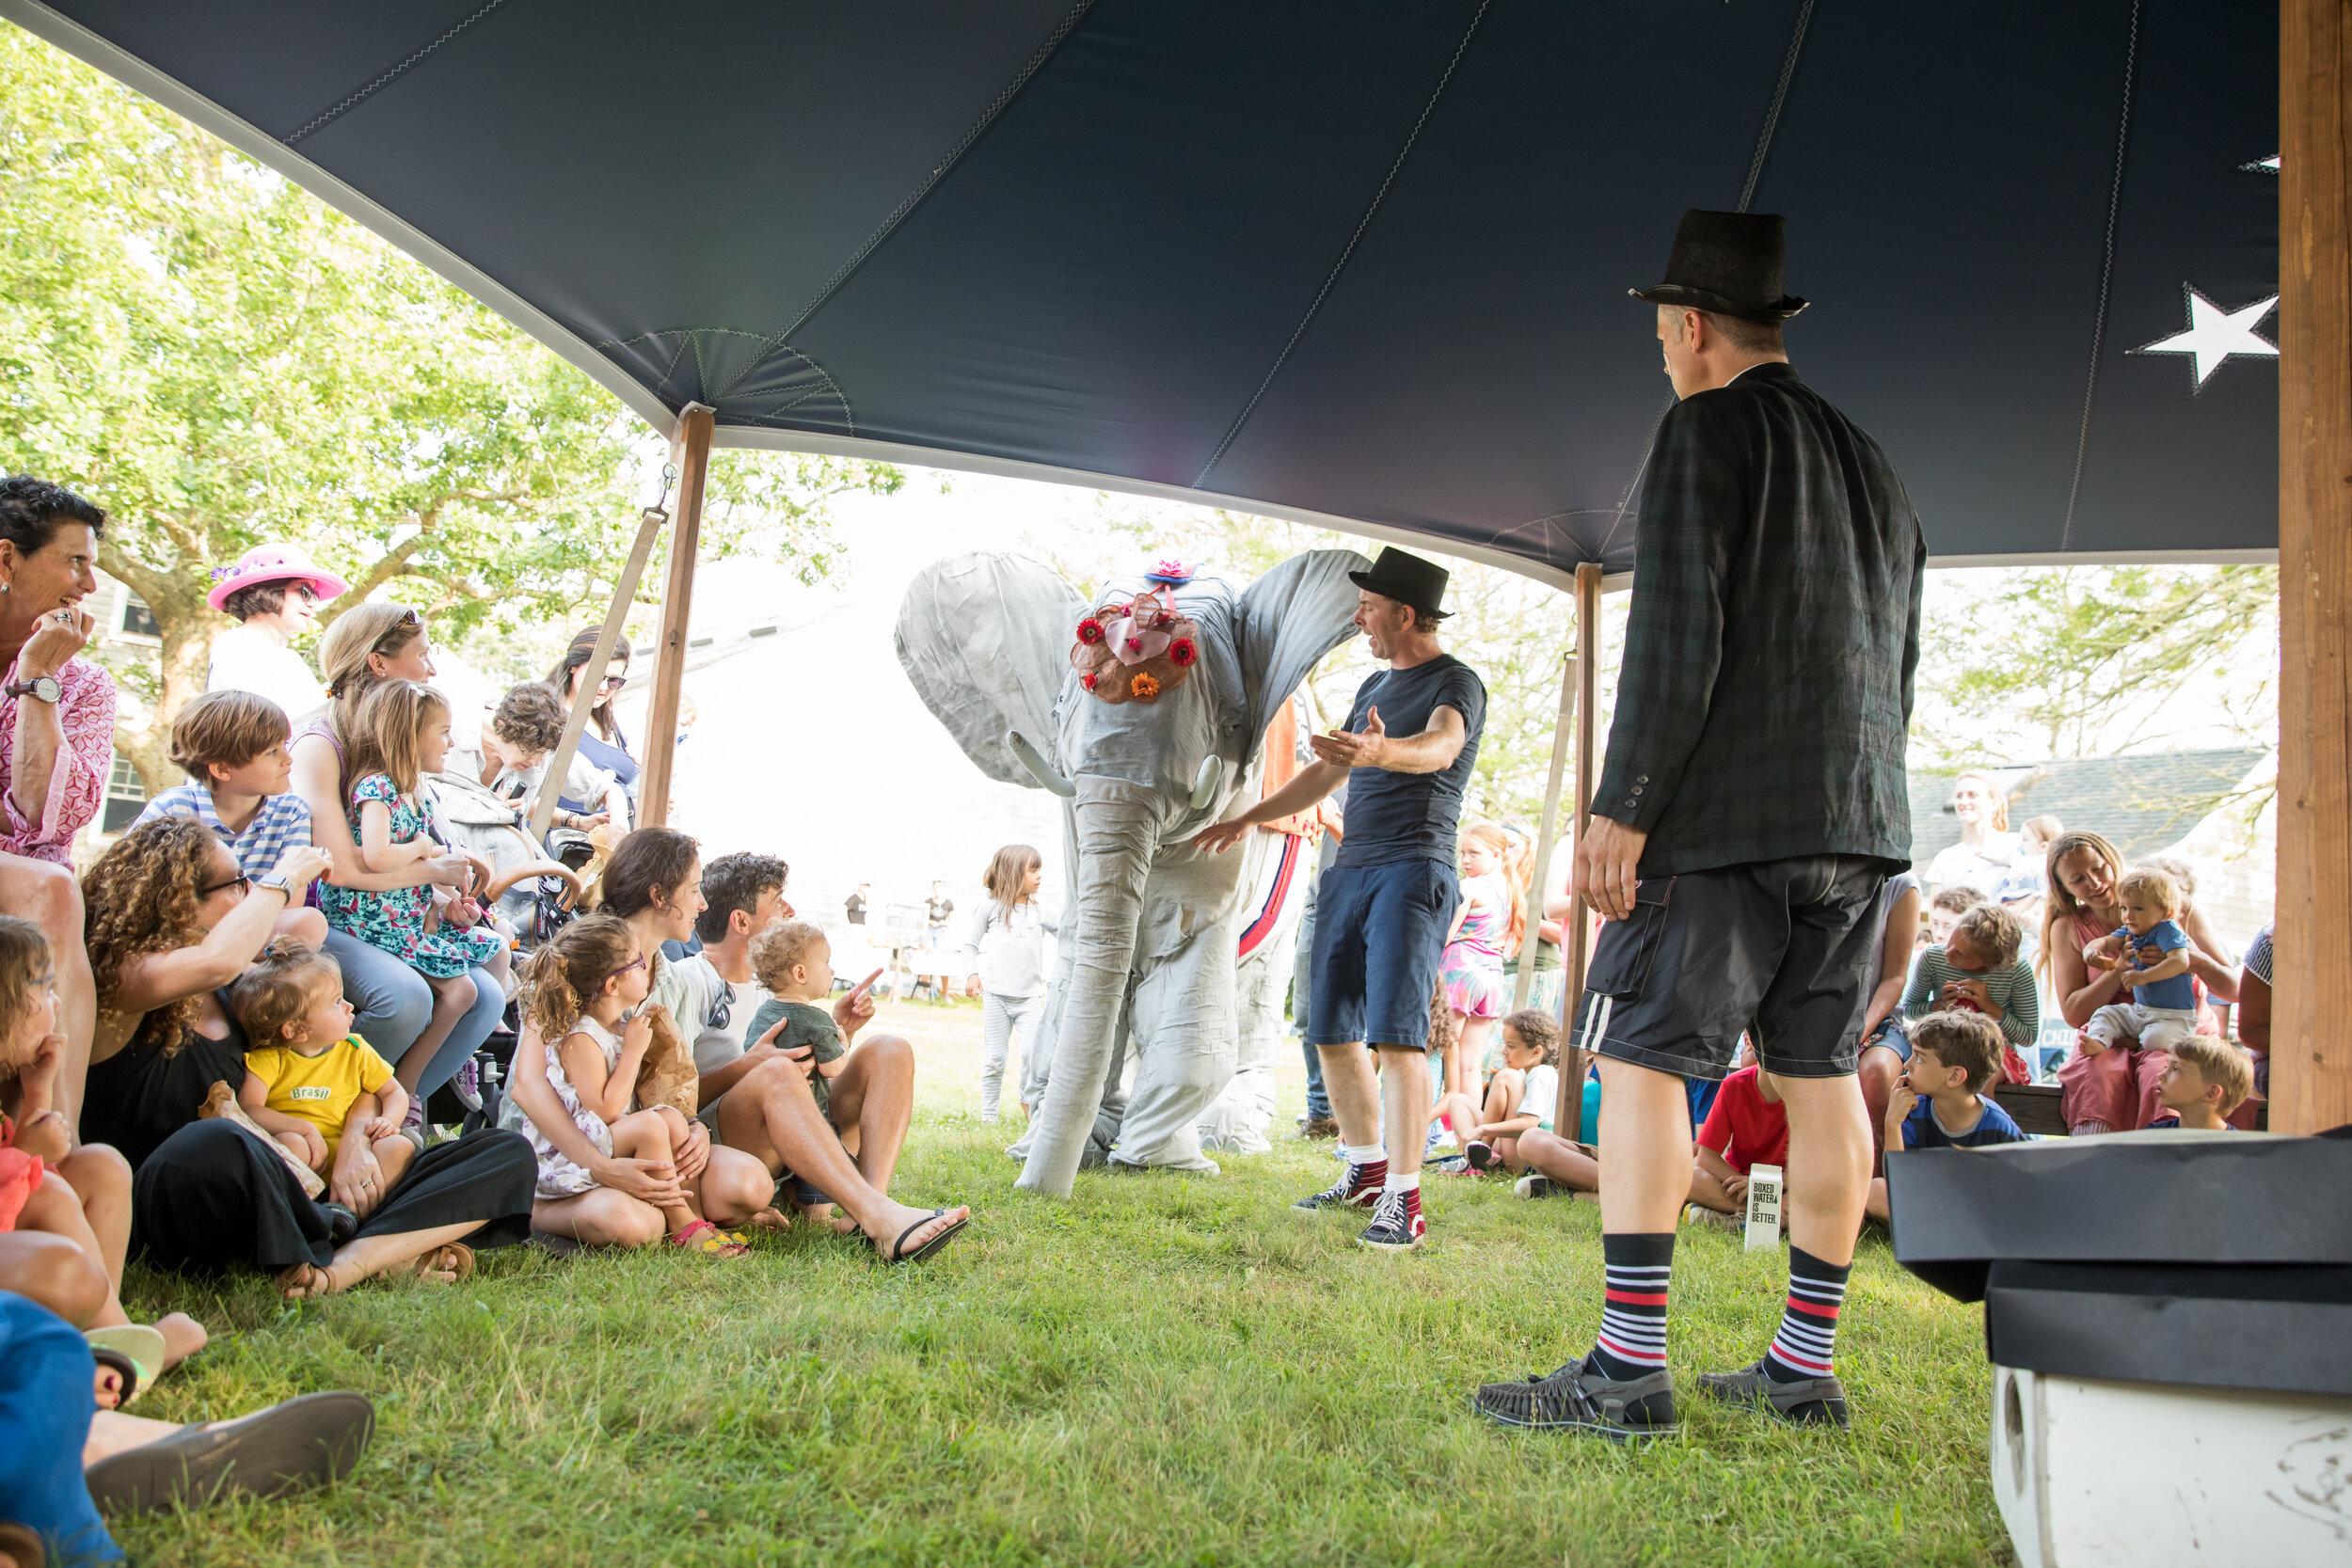 Ellie the Elephant performs in a show under the Big Top at a free Cinema Circus. Photo by Maria Thibodeau.